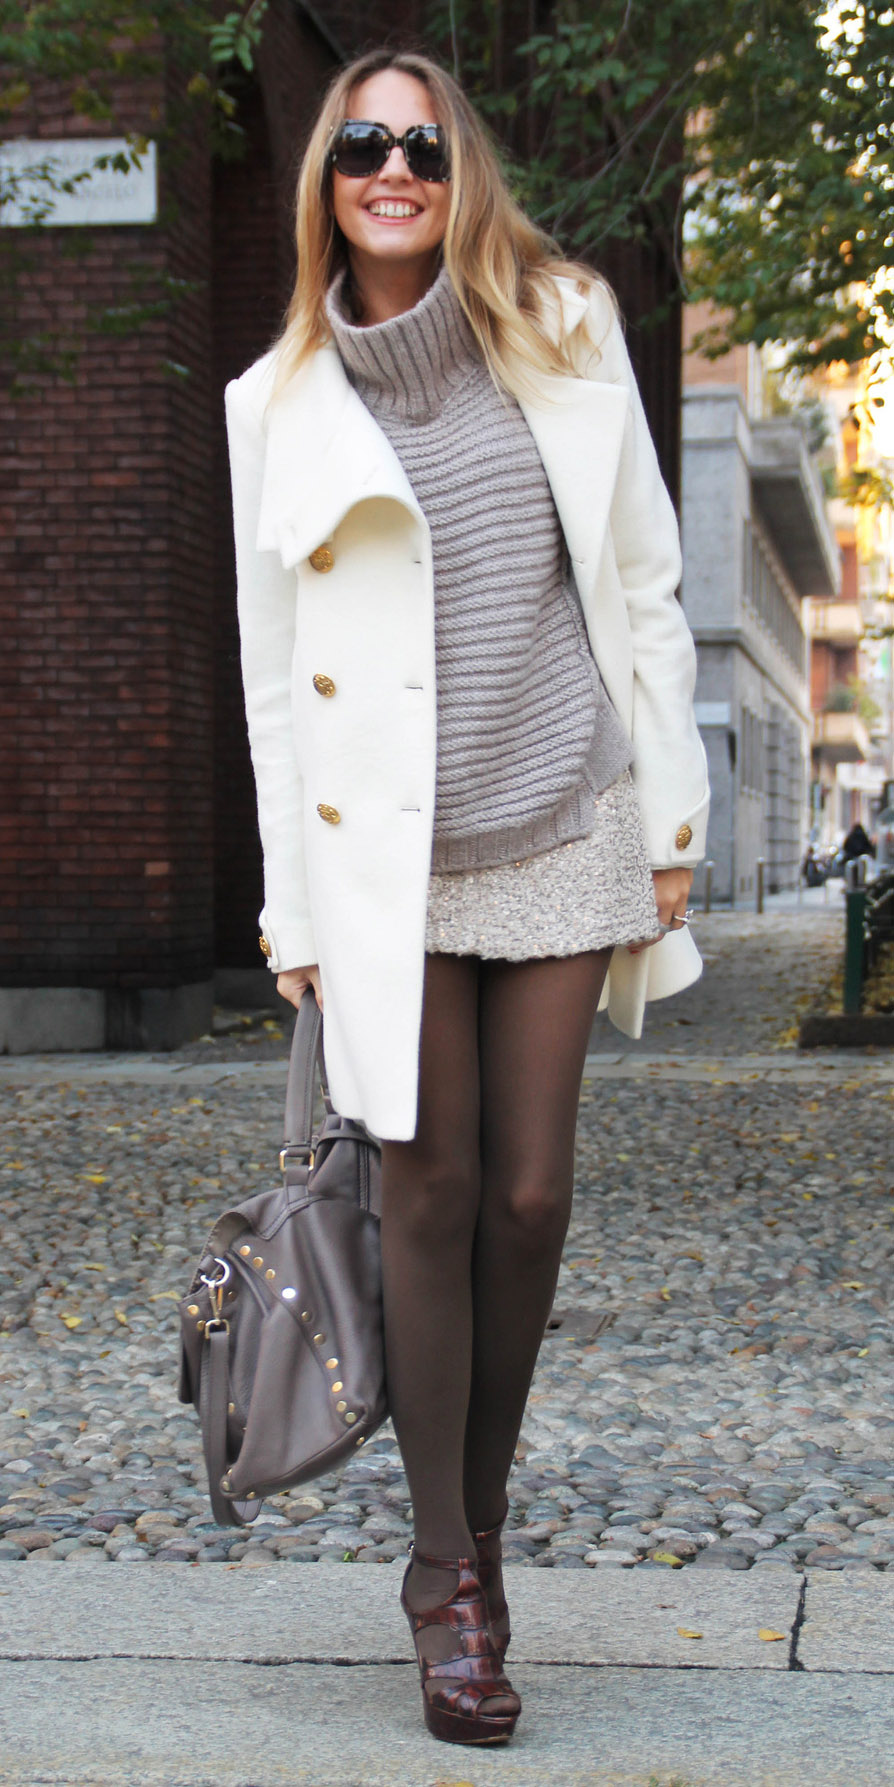 grayl-mini-skirt-grayl-sweater-turtleneck-brown-tights-brown-shoe-sandalh-gray-bag-blonde-white-jacket-coat-peacoat-fall-winter-dinner.jpg